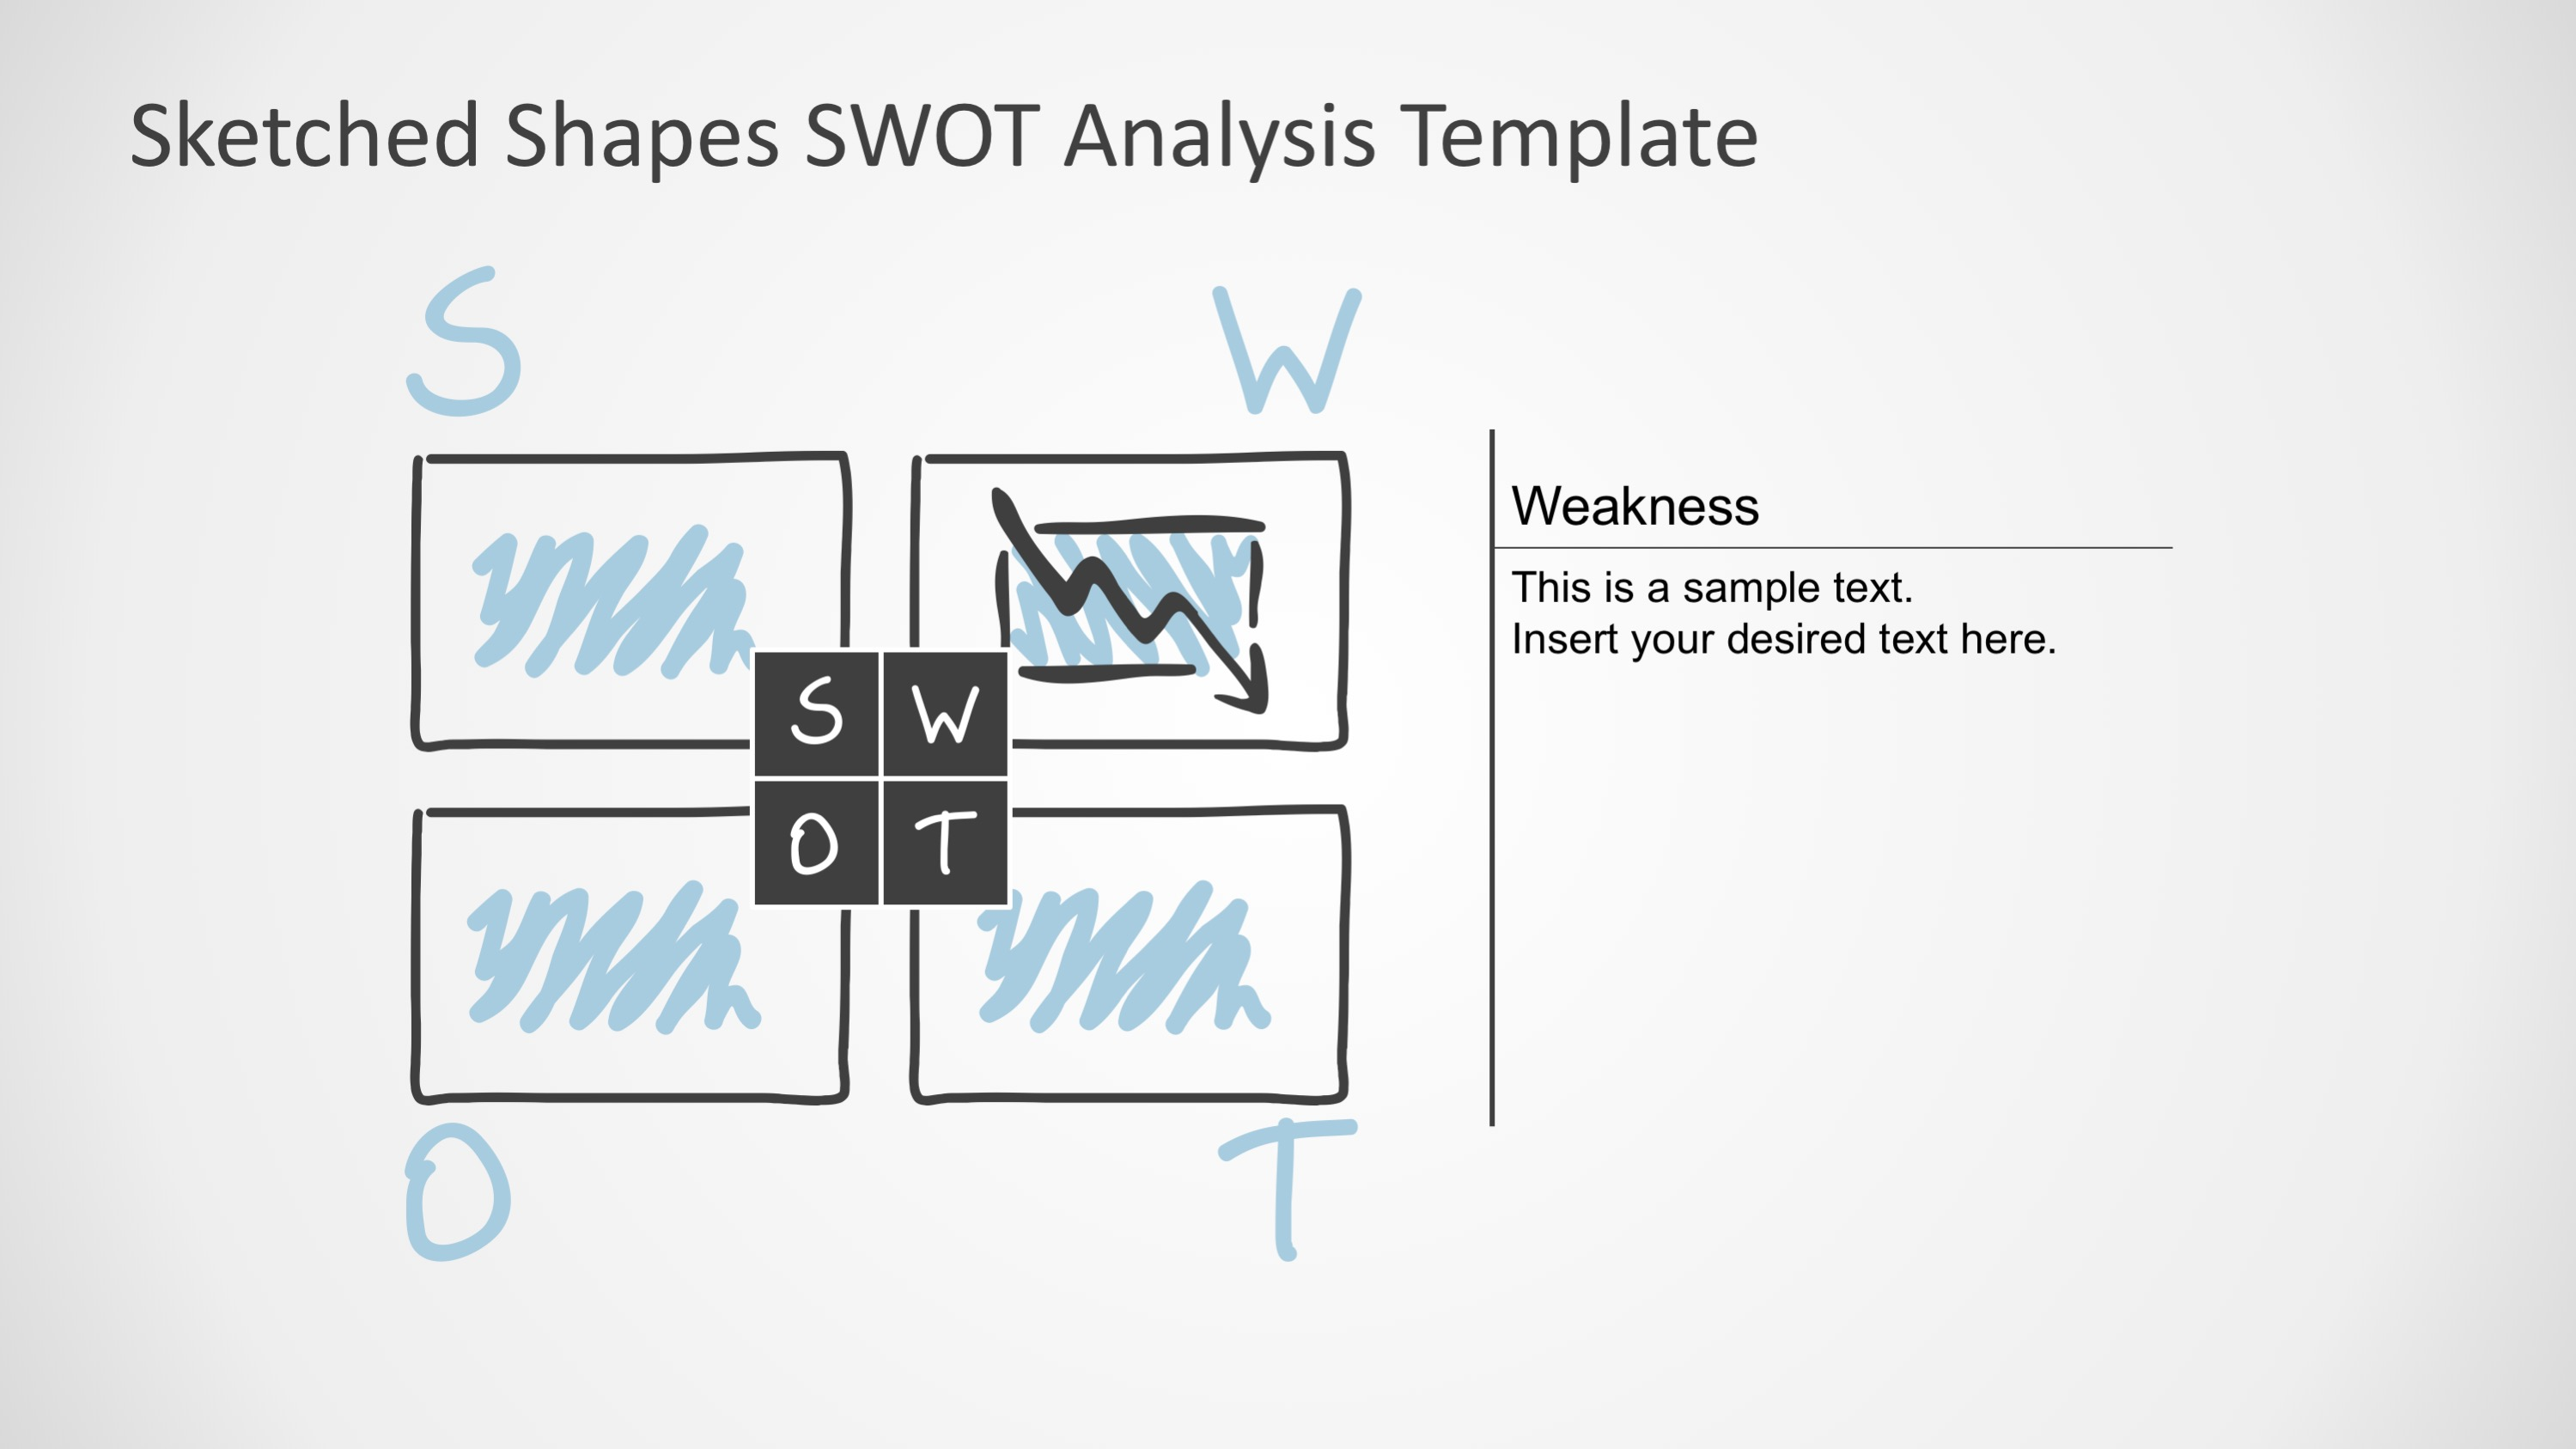 PPT Template SWOT Analysis